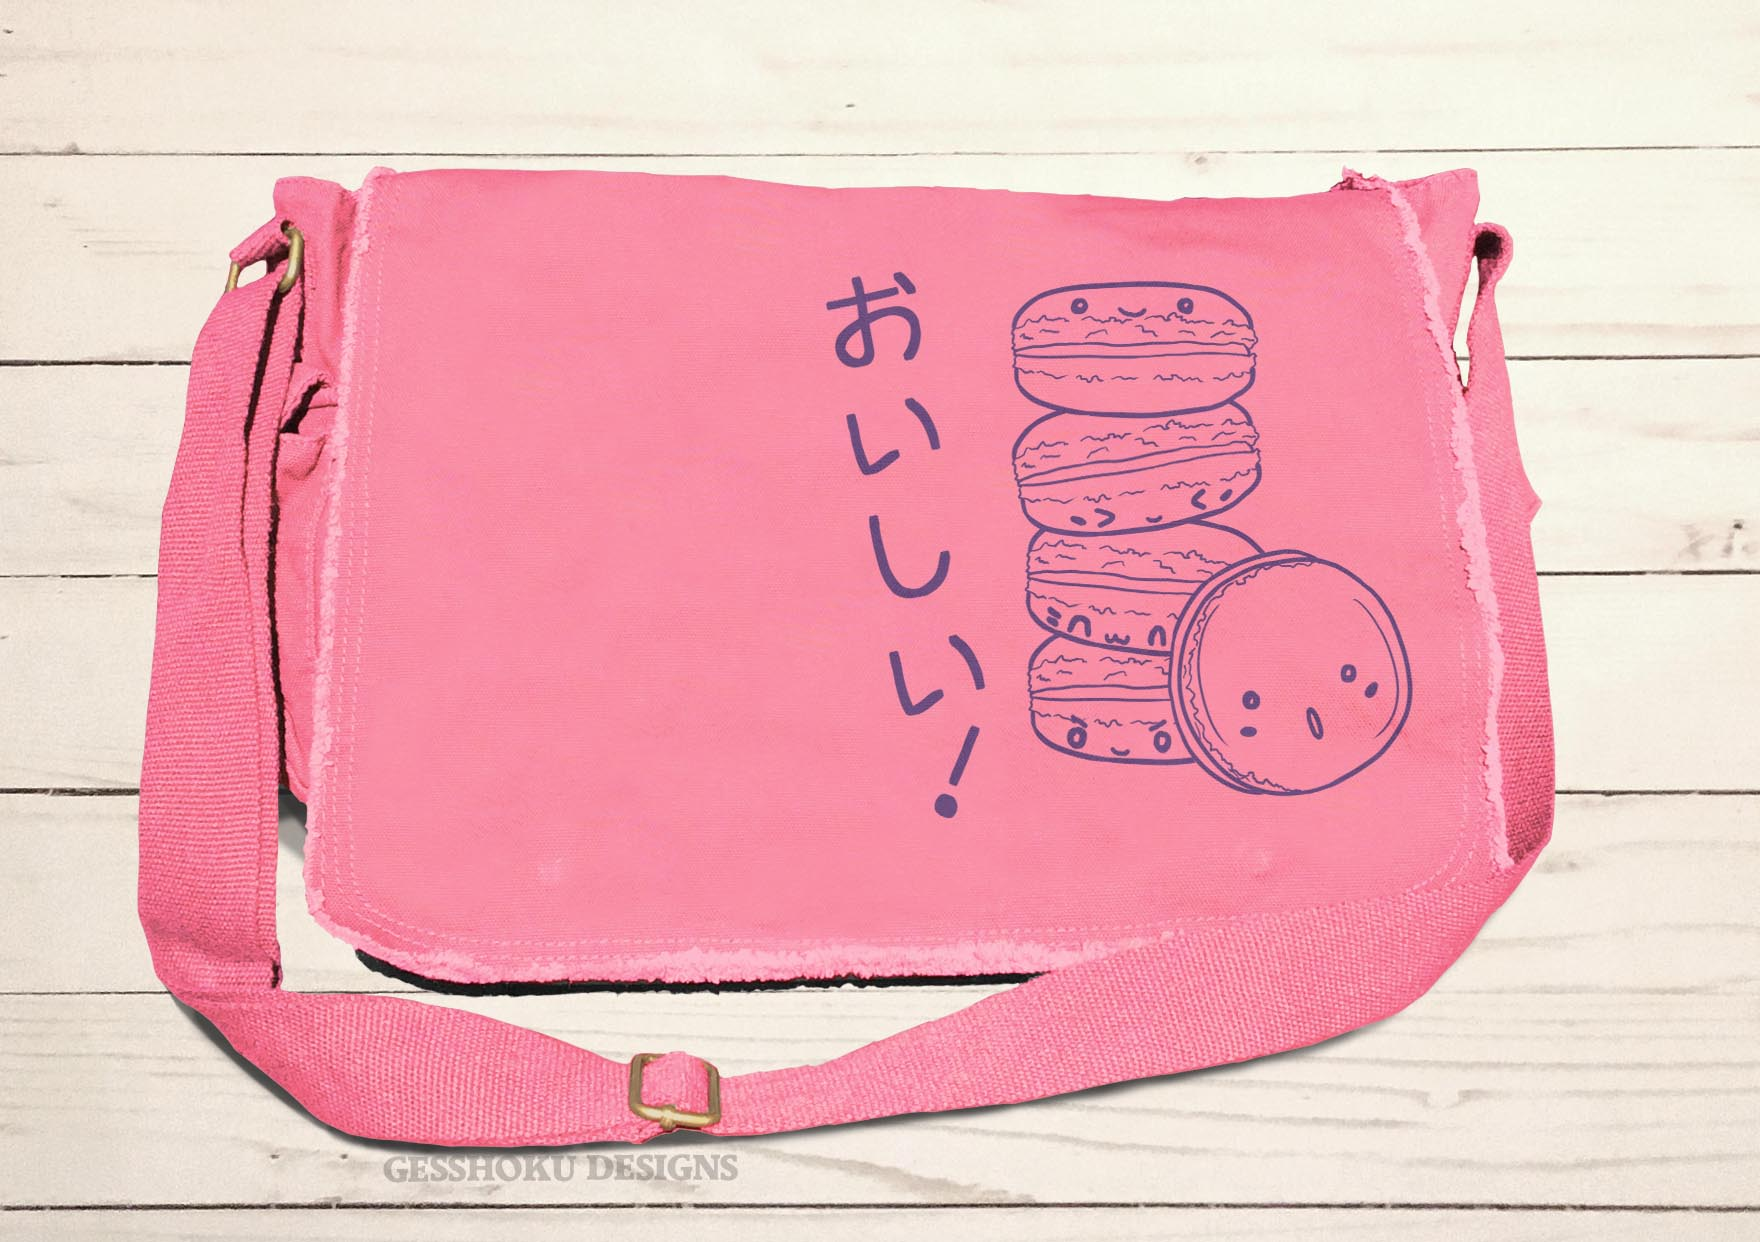 Delicious Macarons Messenger Bag - Pink